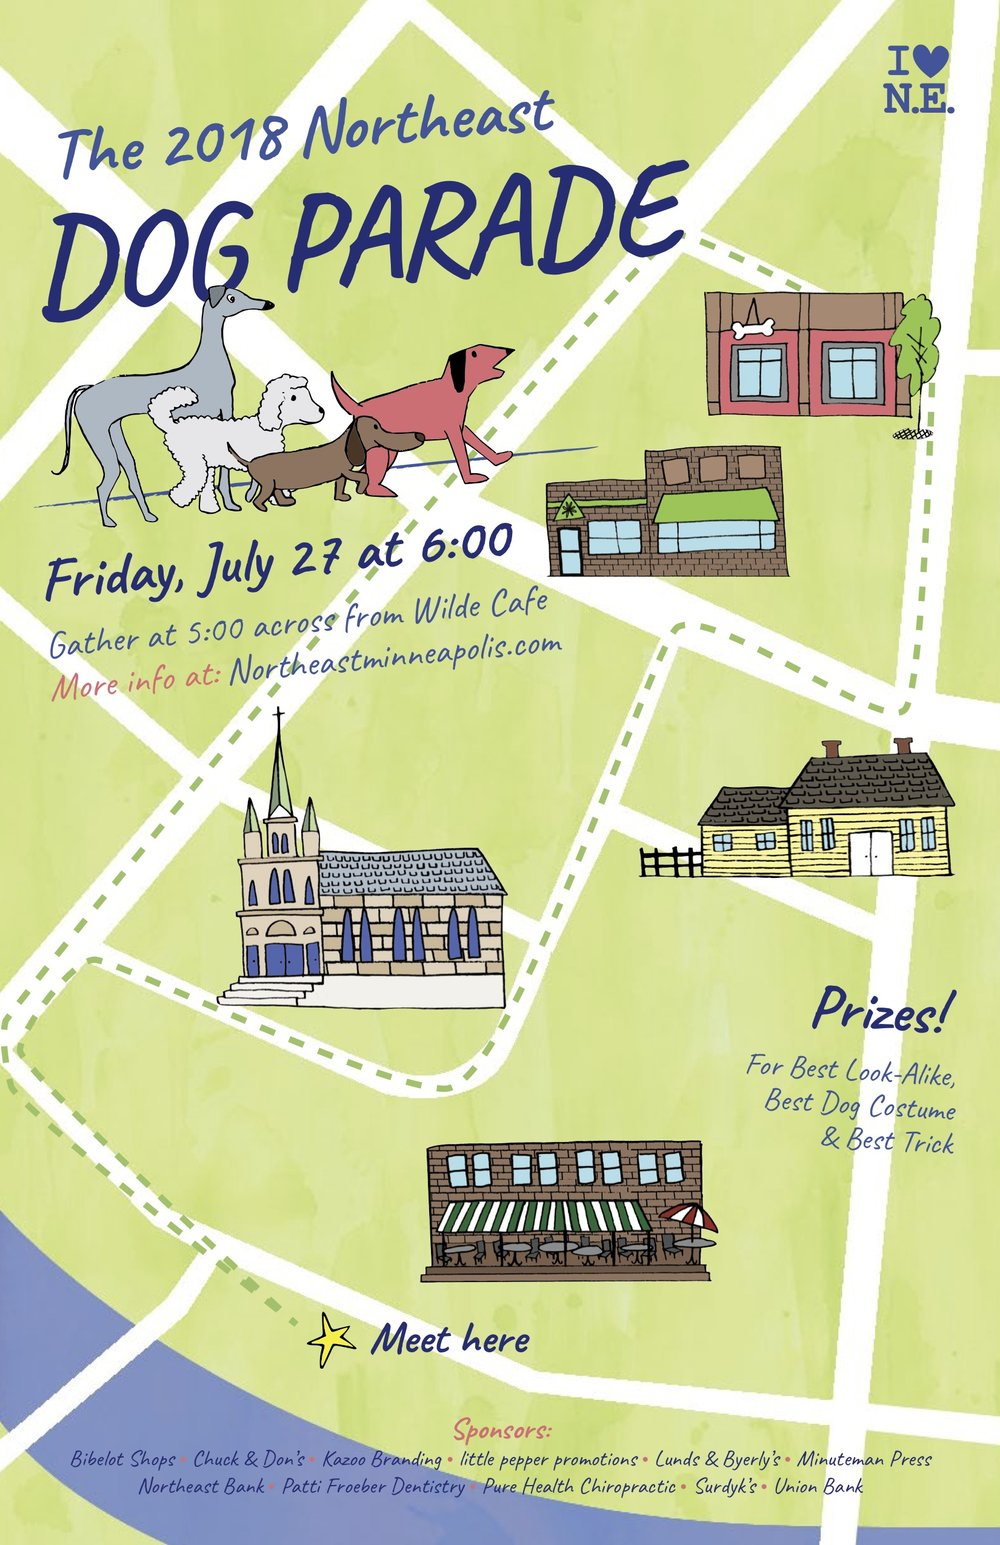 The final poster design for the 2018 Northeast Dog Parade hosted by The Heart of Northeast